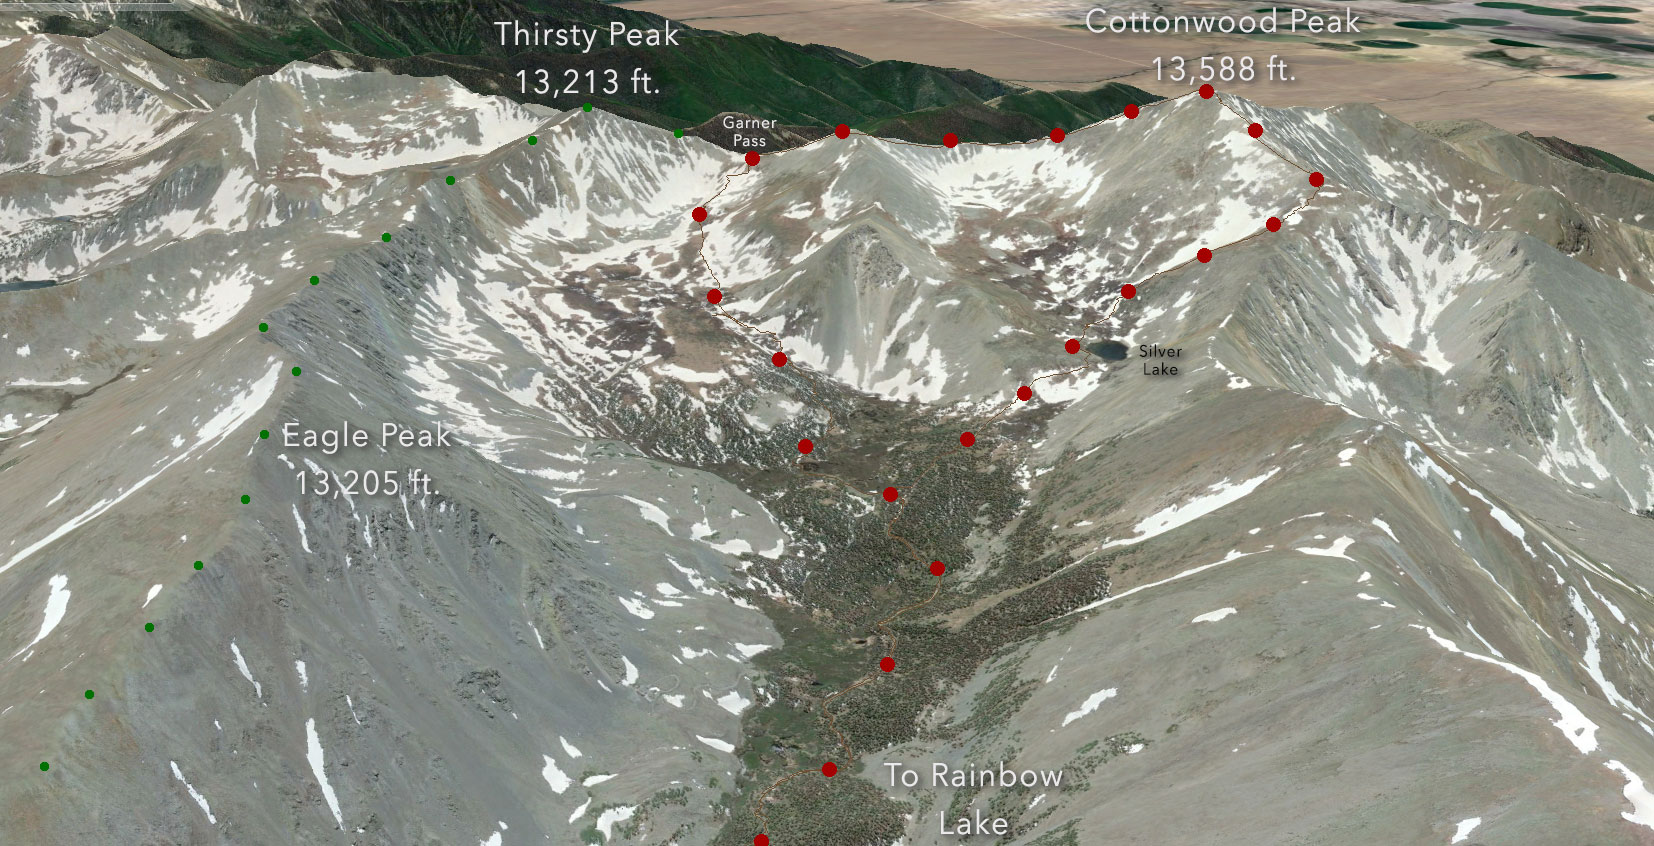 Google Earth overview of our Cottonwood Peak loop.